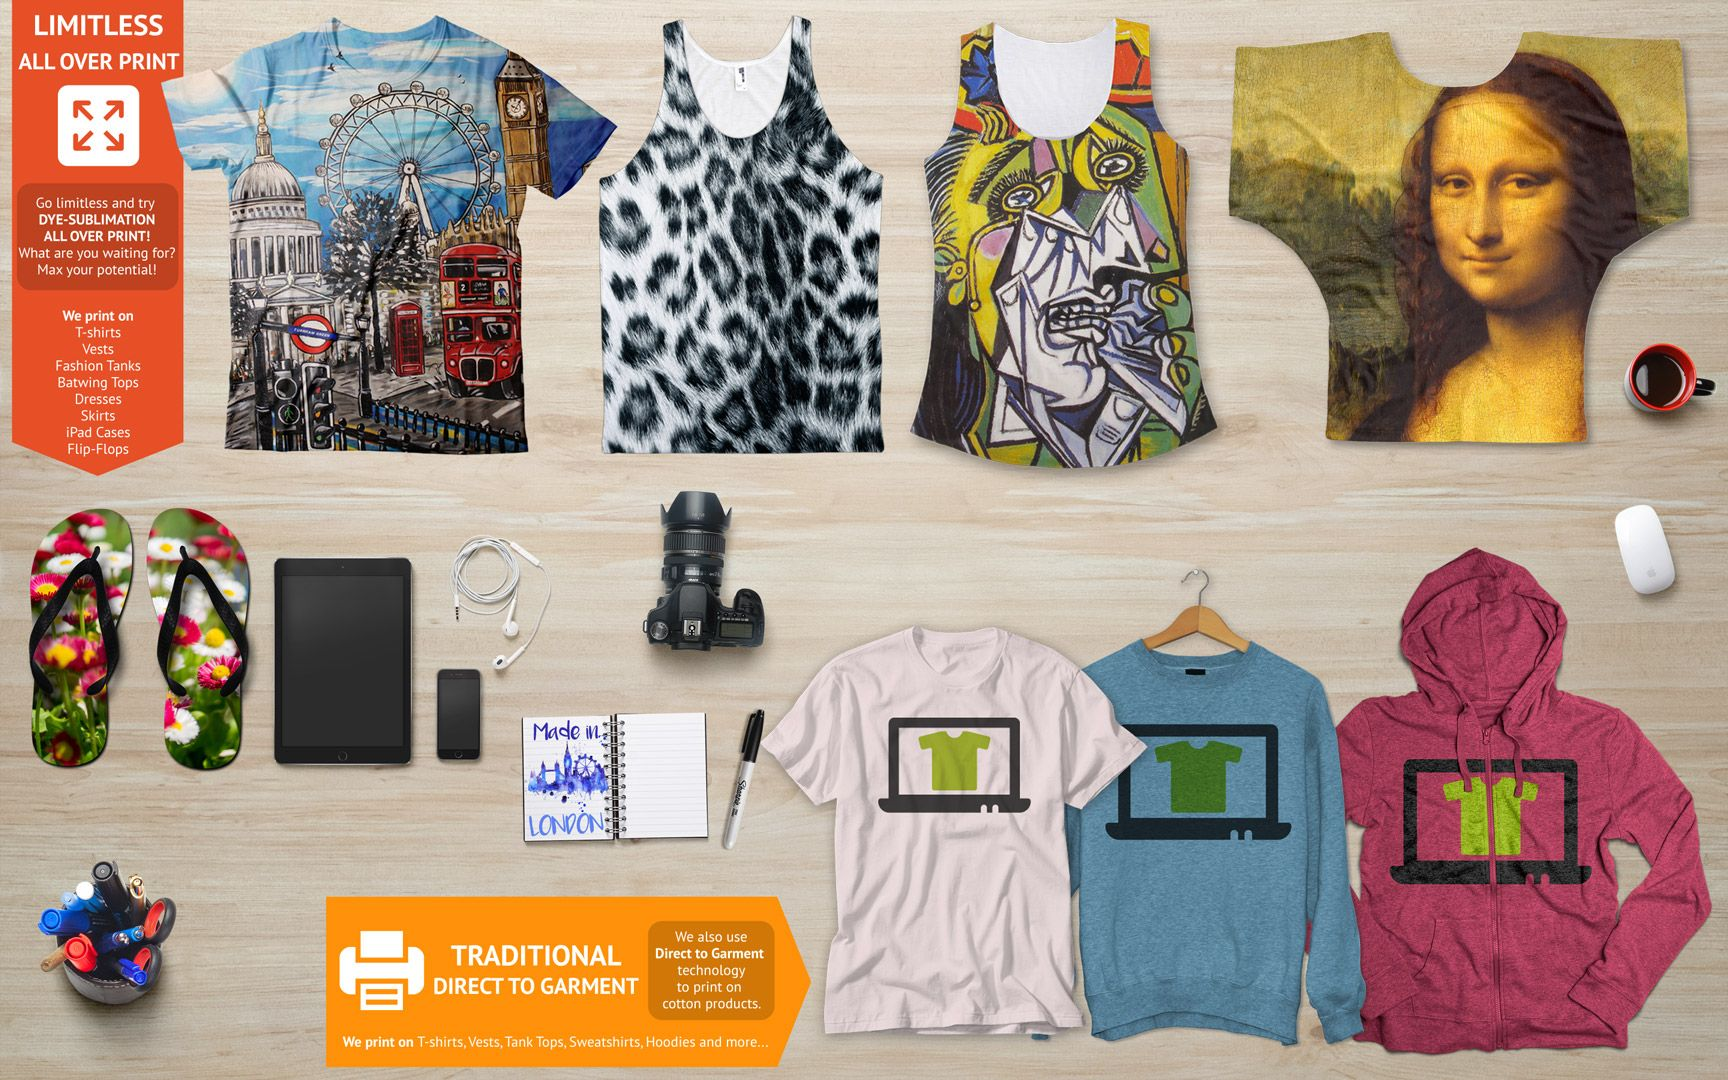 All Over Dye Sublimation Printing Process For The Polyester Garment